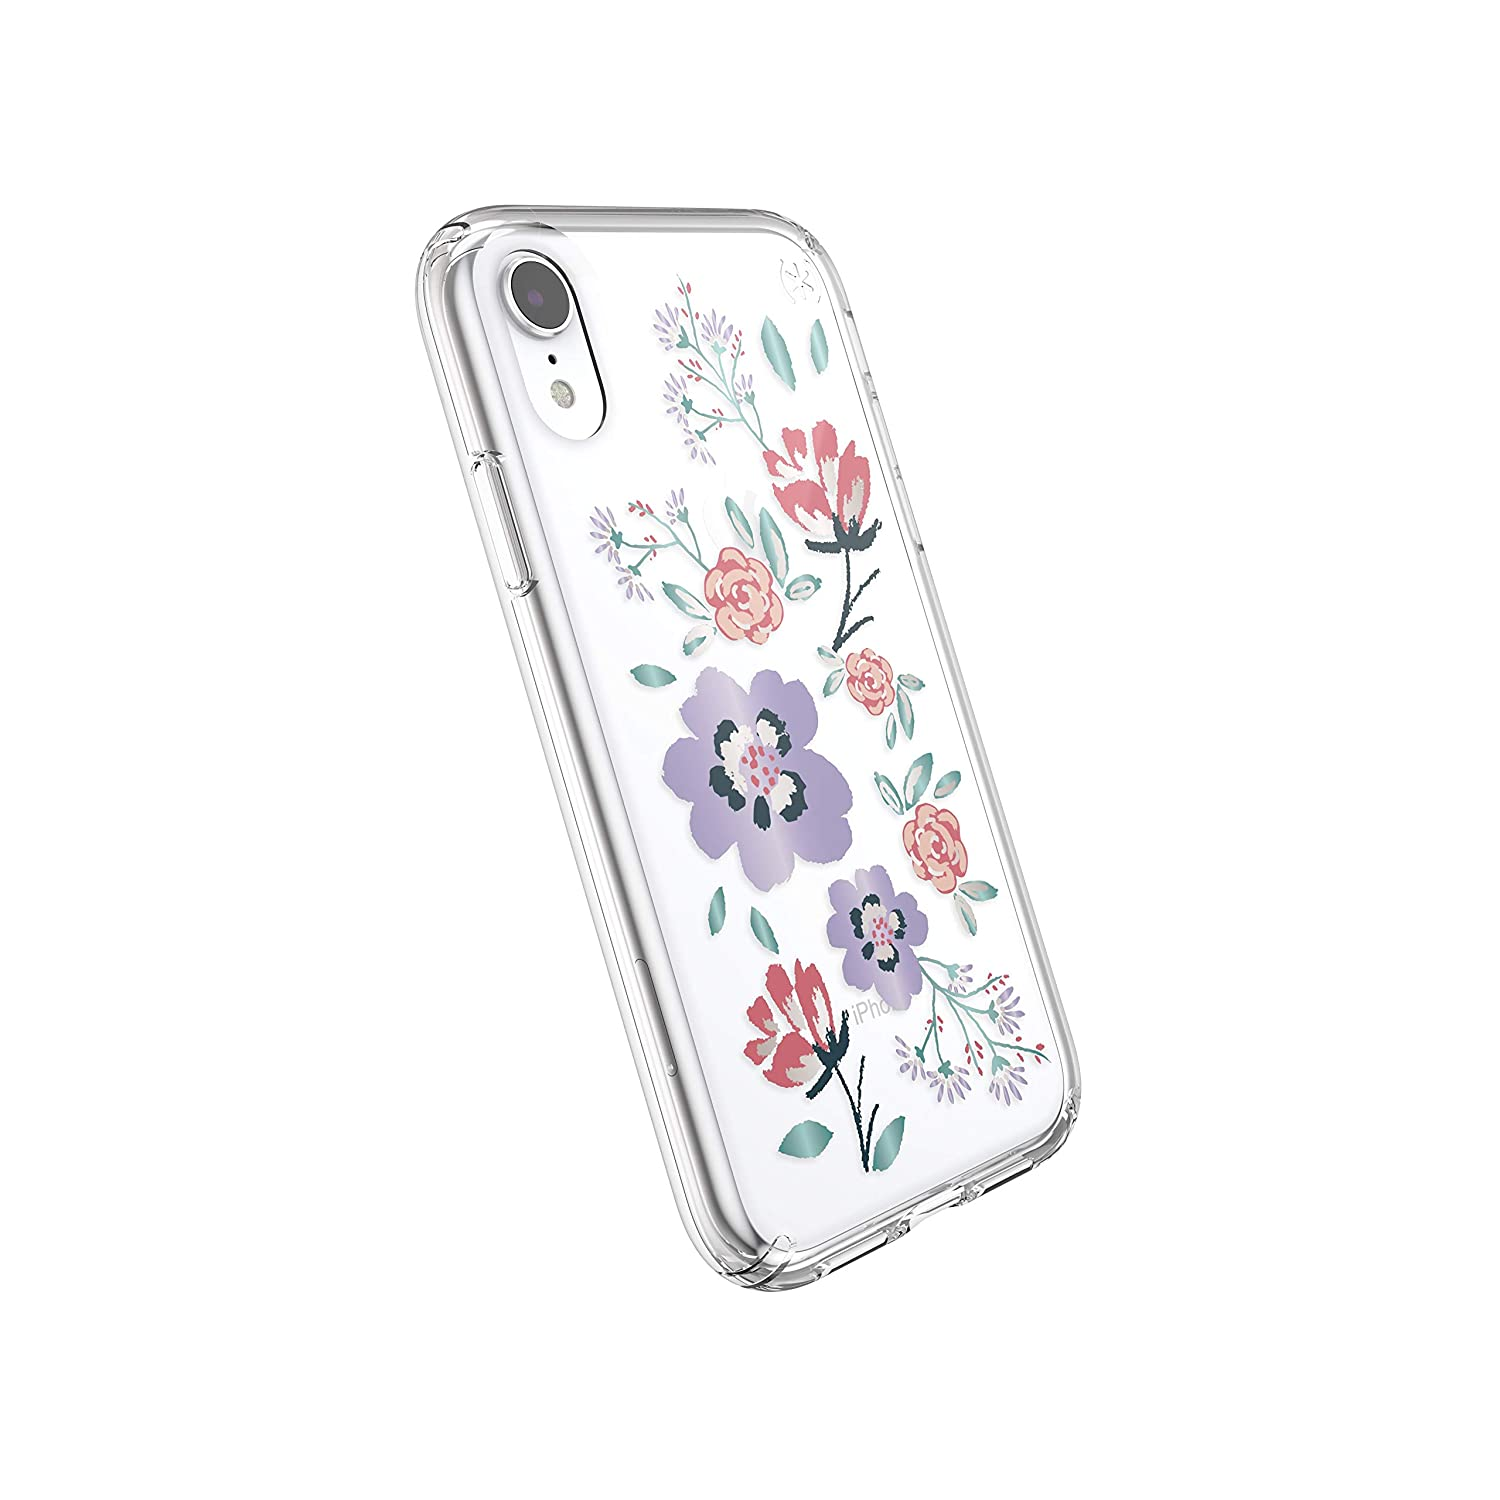 official photos d906a 317f3 Speck Products Presidio Clear + Print iPhone XR Case, CanopyFloral  Lavender/Clear